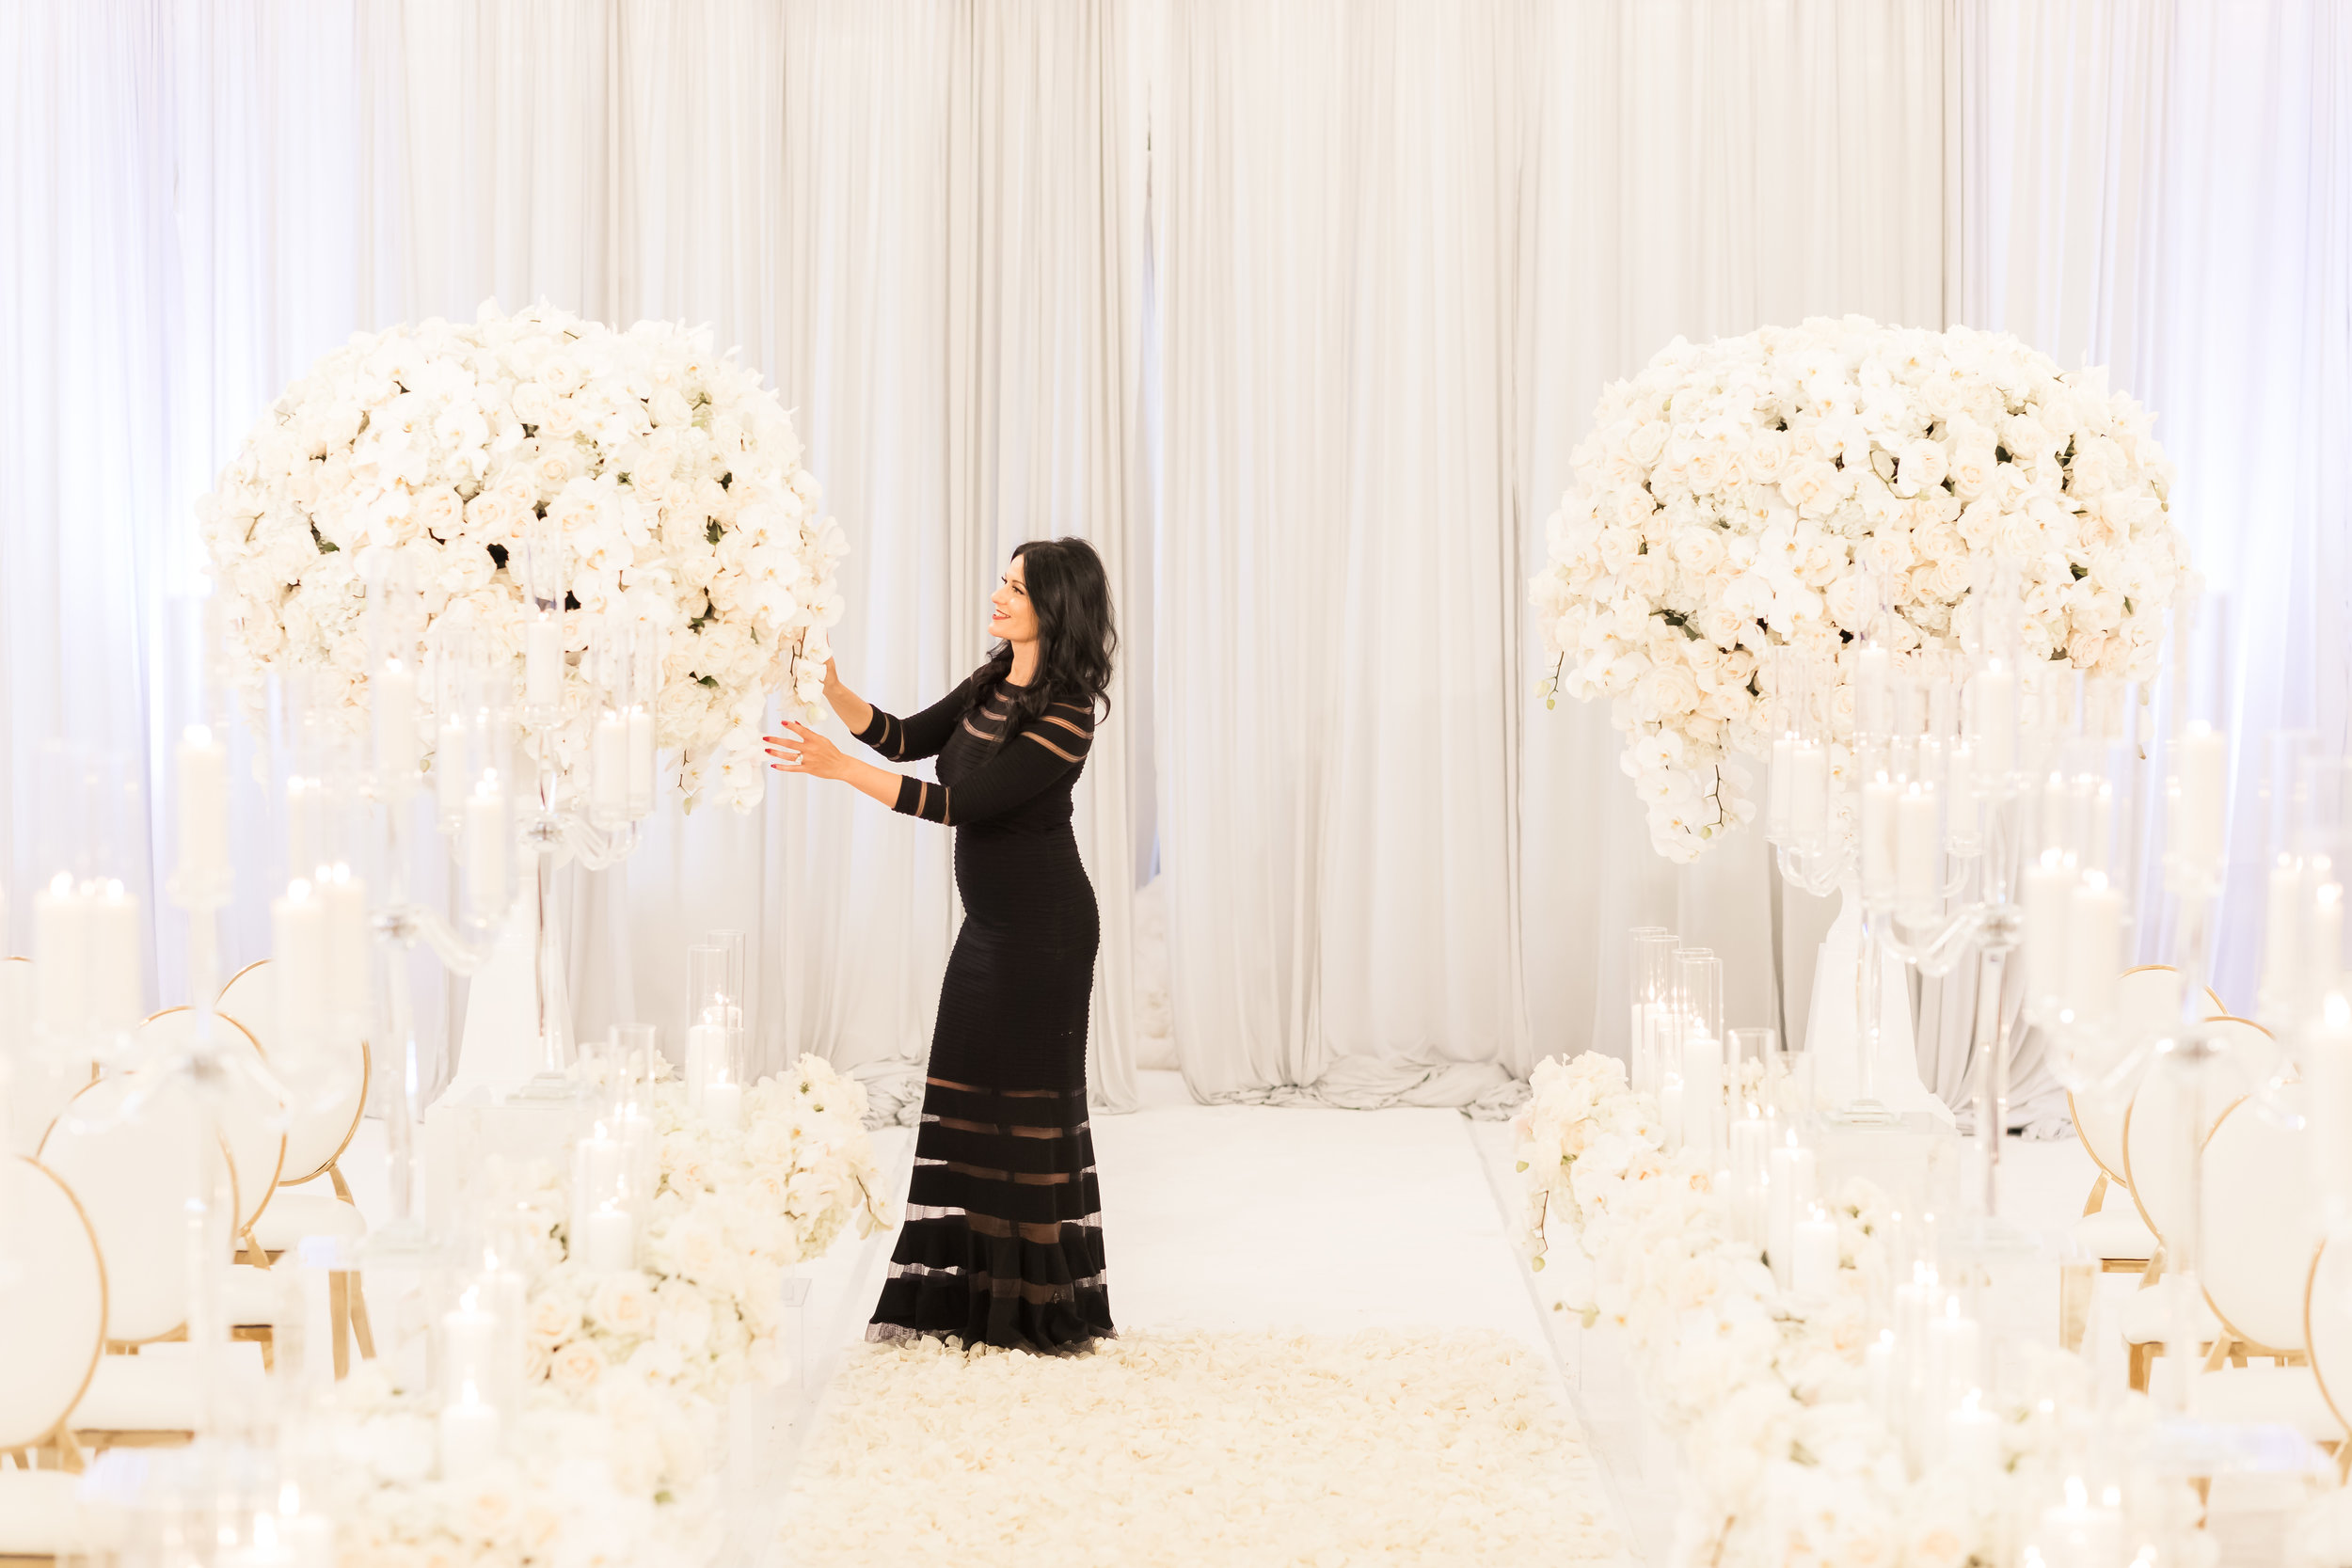 Las Vegas Wedding Planner Andrea Eppolito putting the finishing touches on a wedding ceremony. Photo by Brian Leahy.